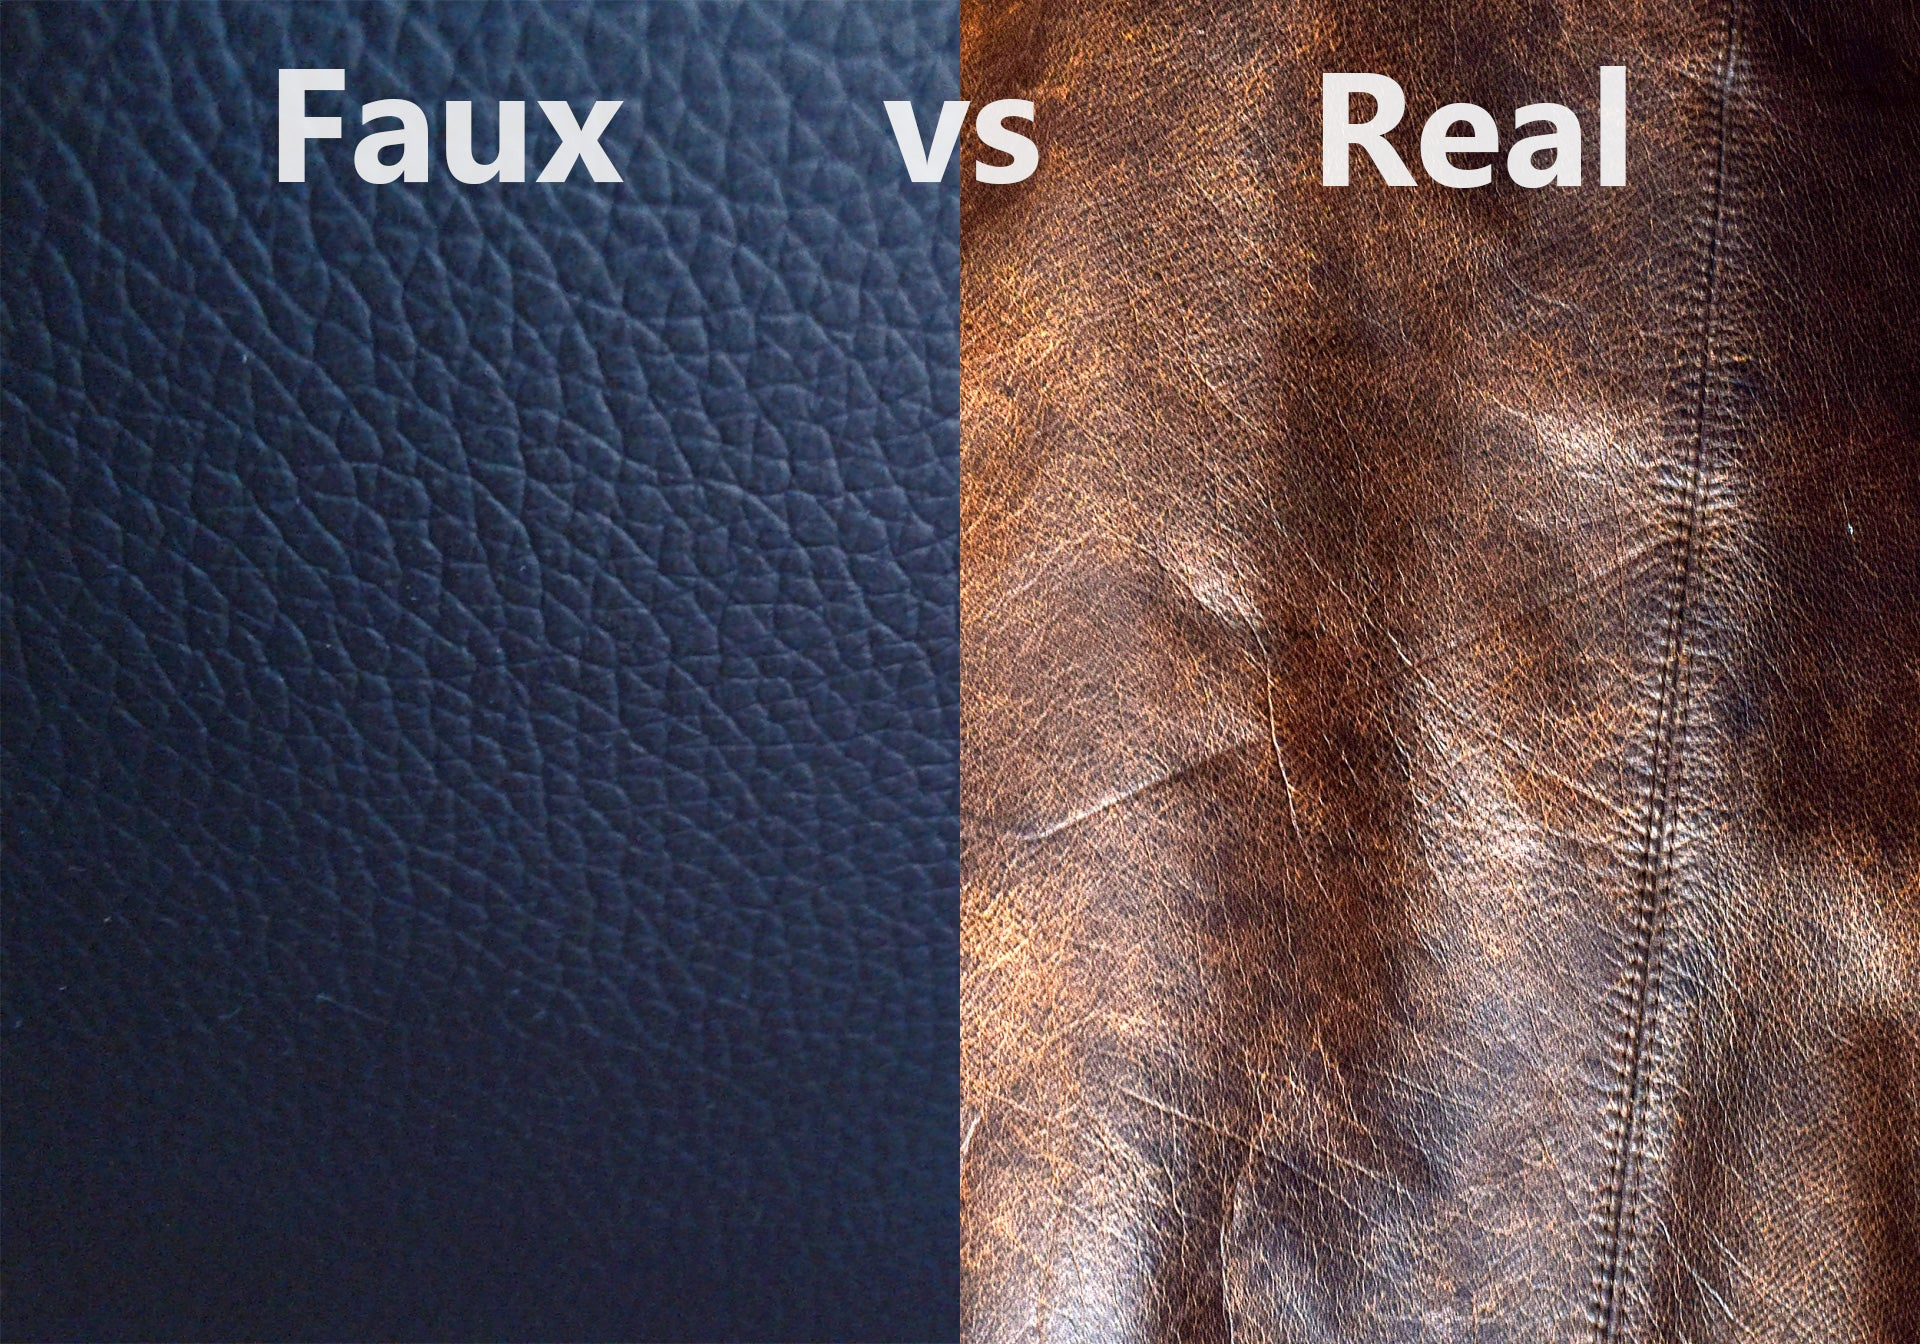 Faux Leather vs Real Leather for Women's Clothing What is Vegan Leather